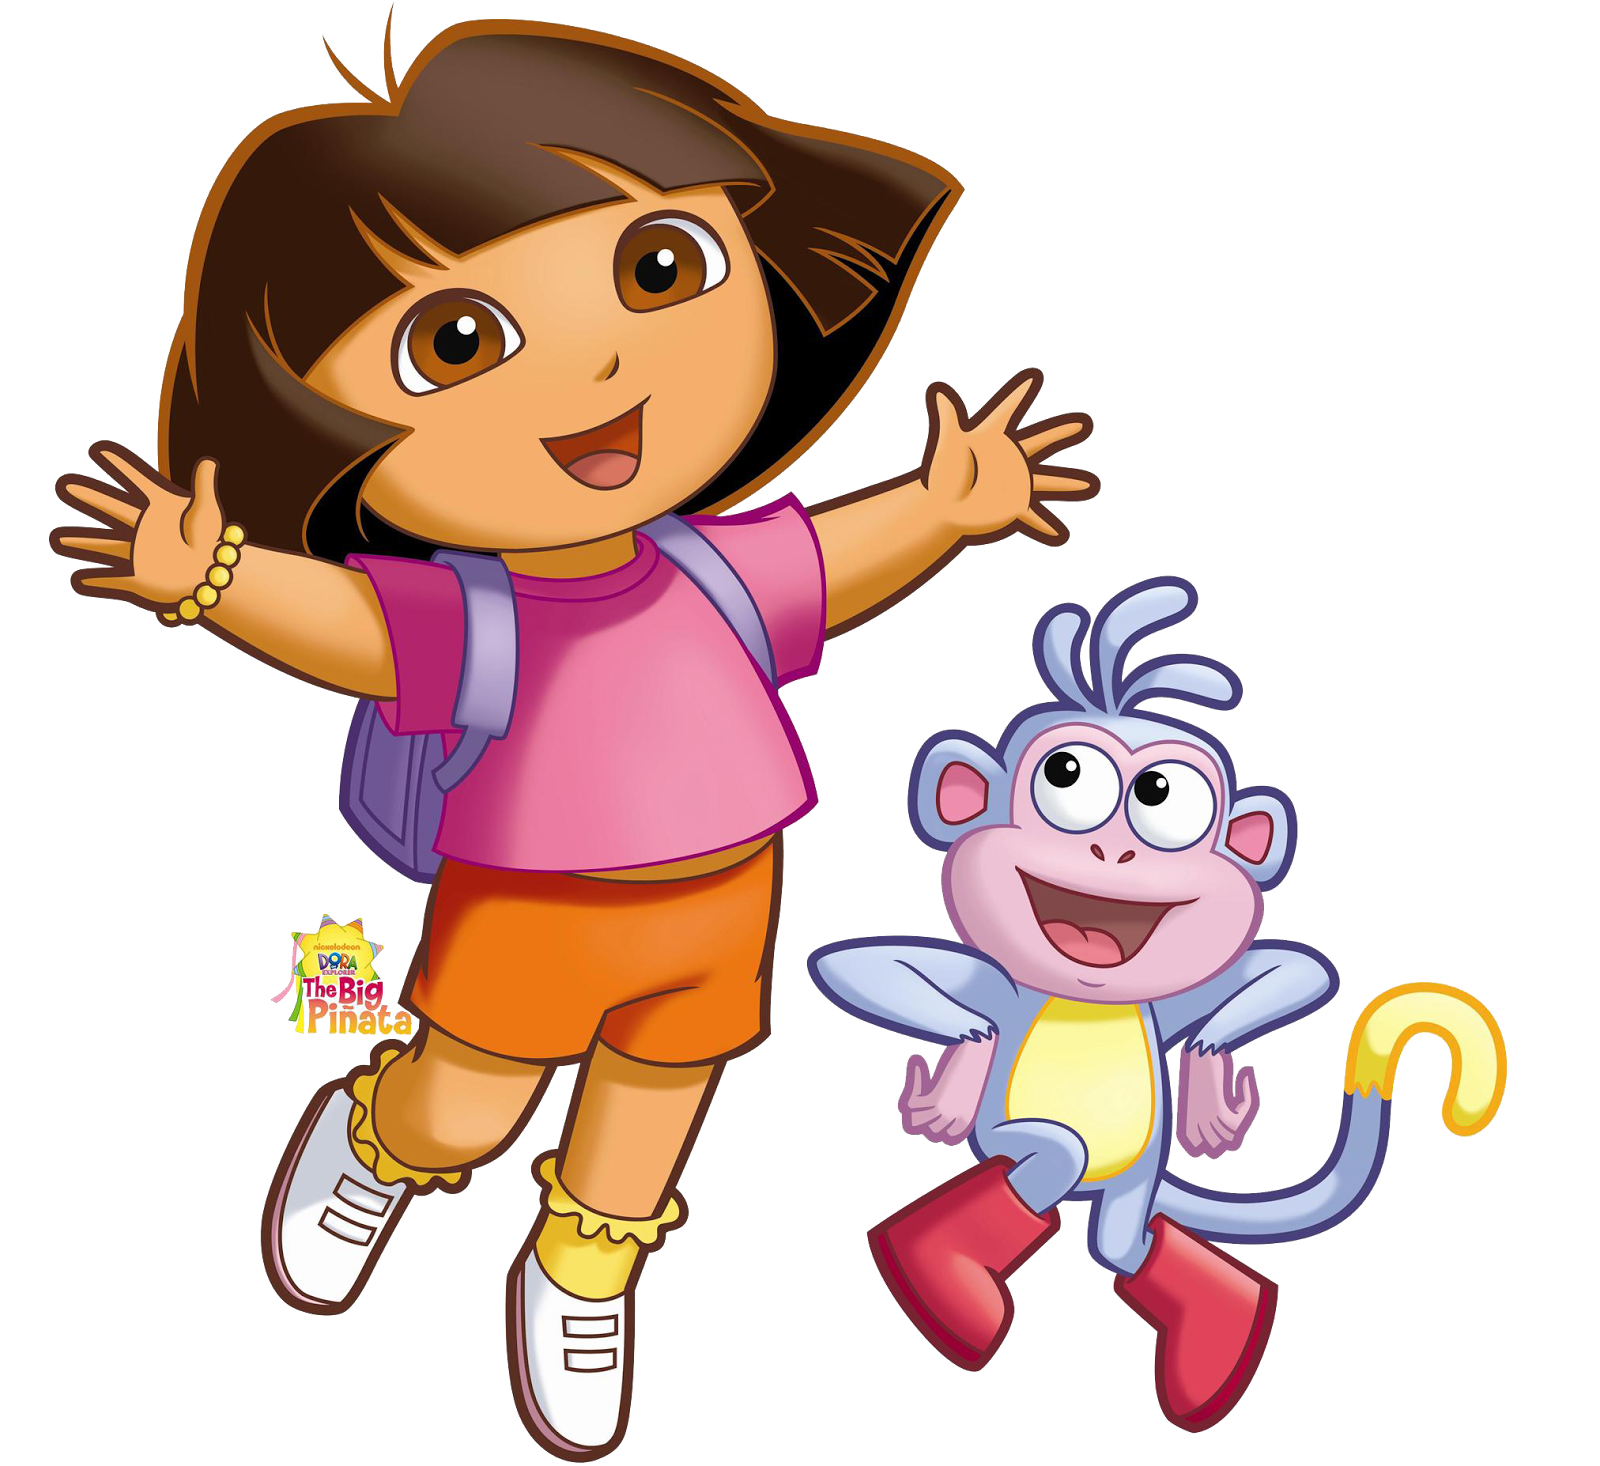 Cartoon 5 Characters : Cartoon characters dora the explorer images